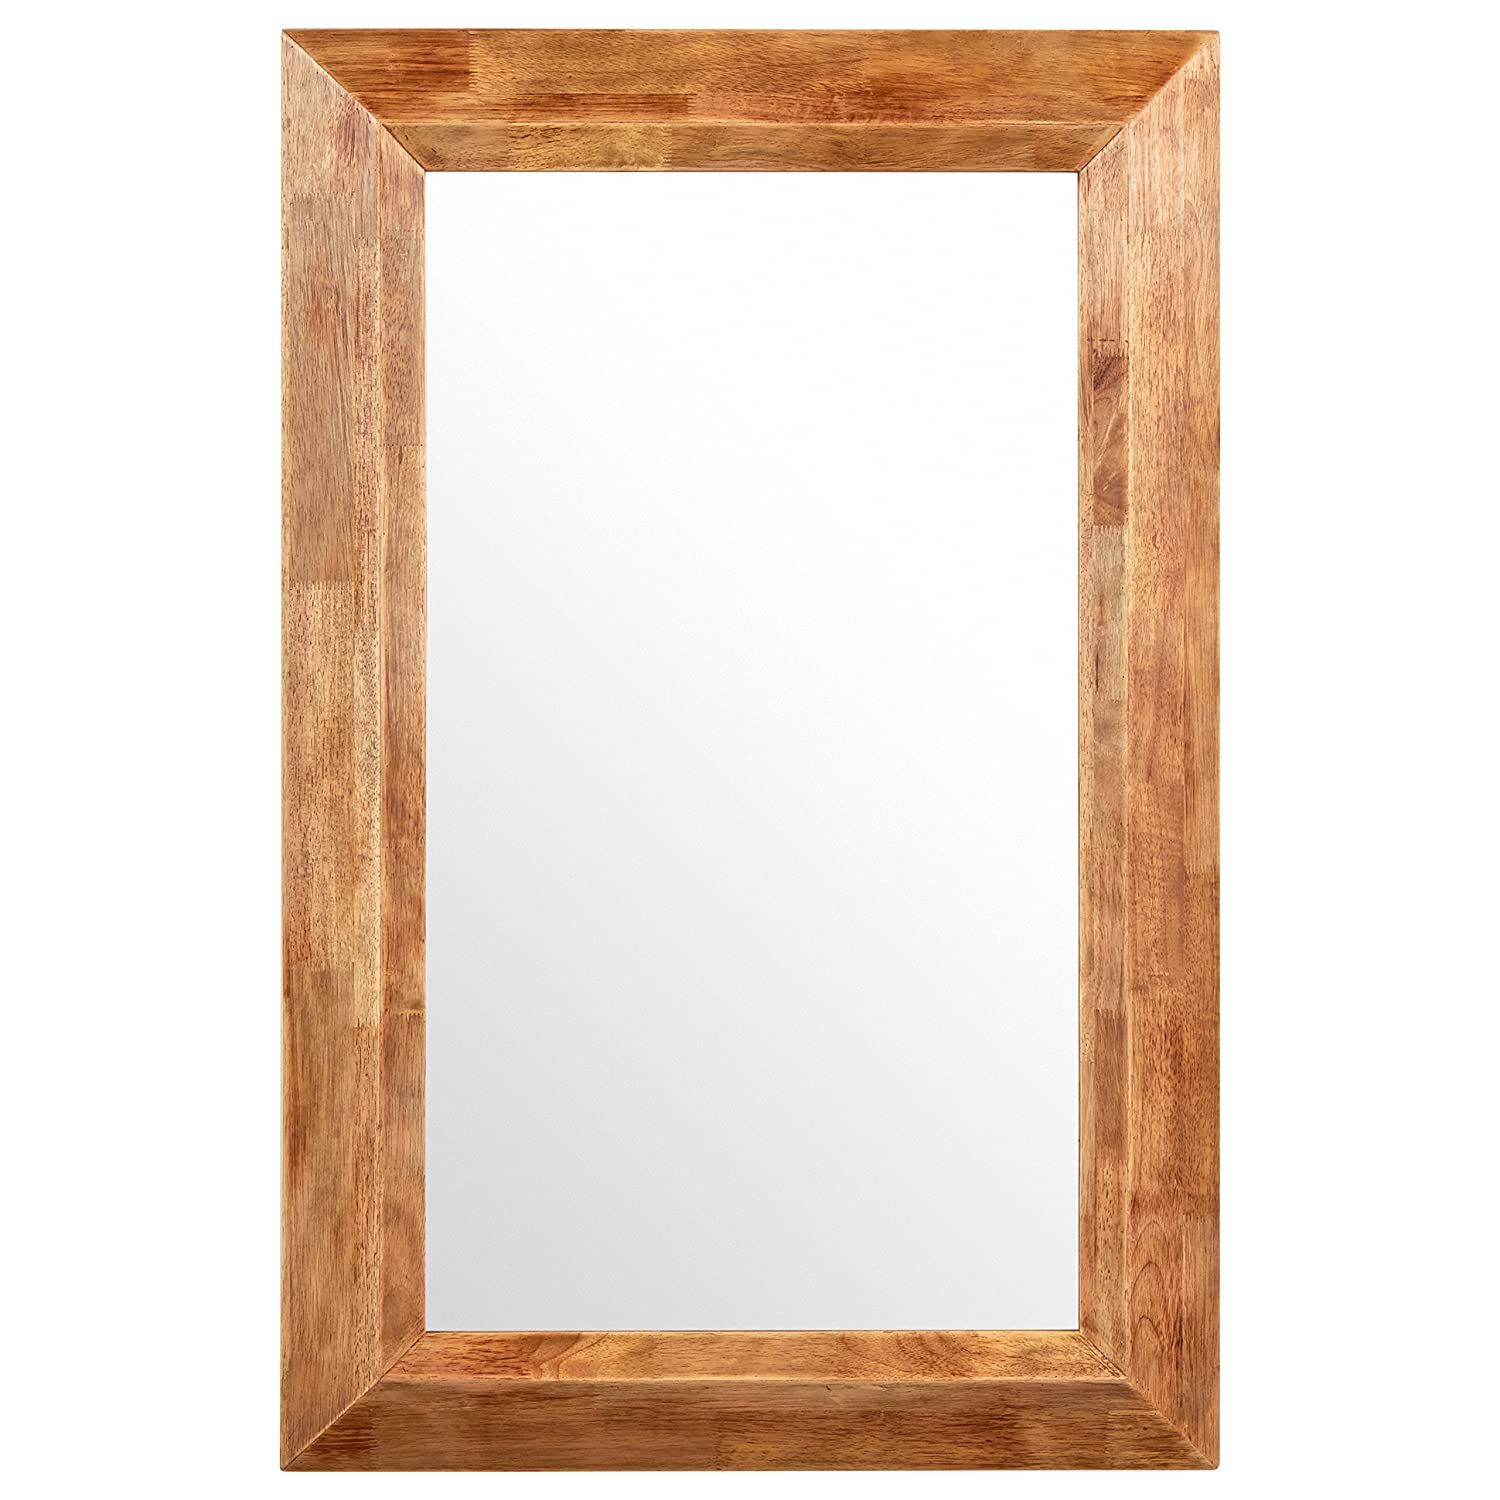 Stone & Beam Square Rustic Wood Frame Mirror, 25.75